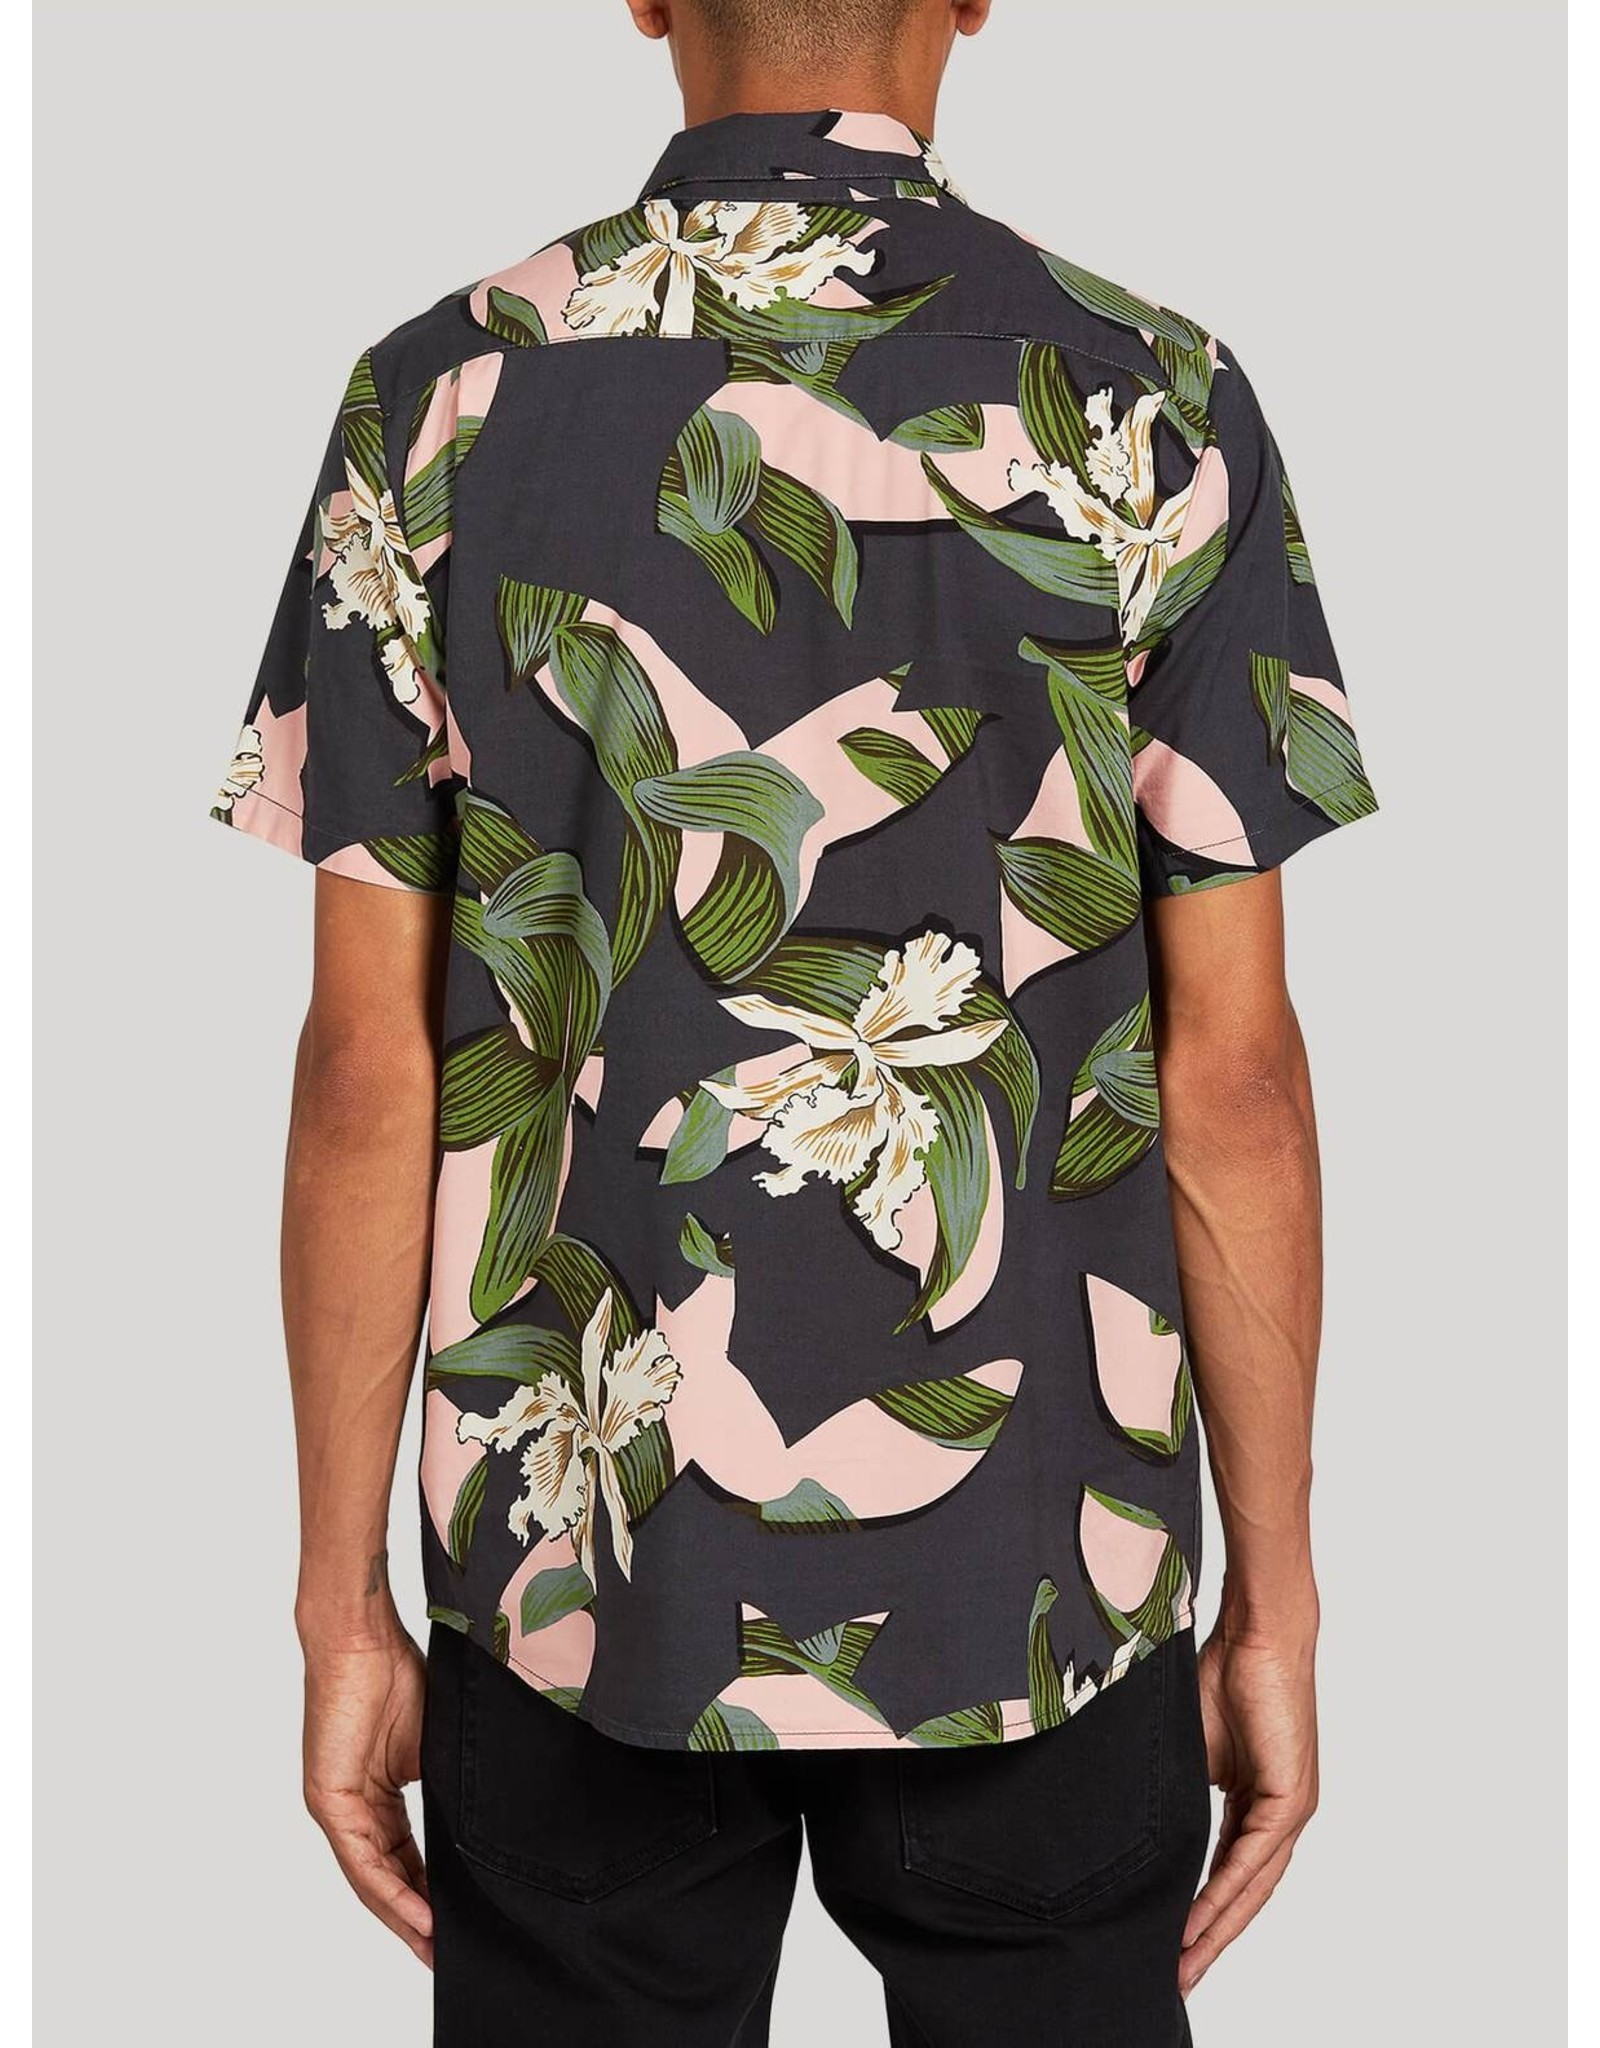 Volcom Cut Out Floral - Dark Charcoal